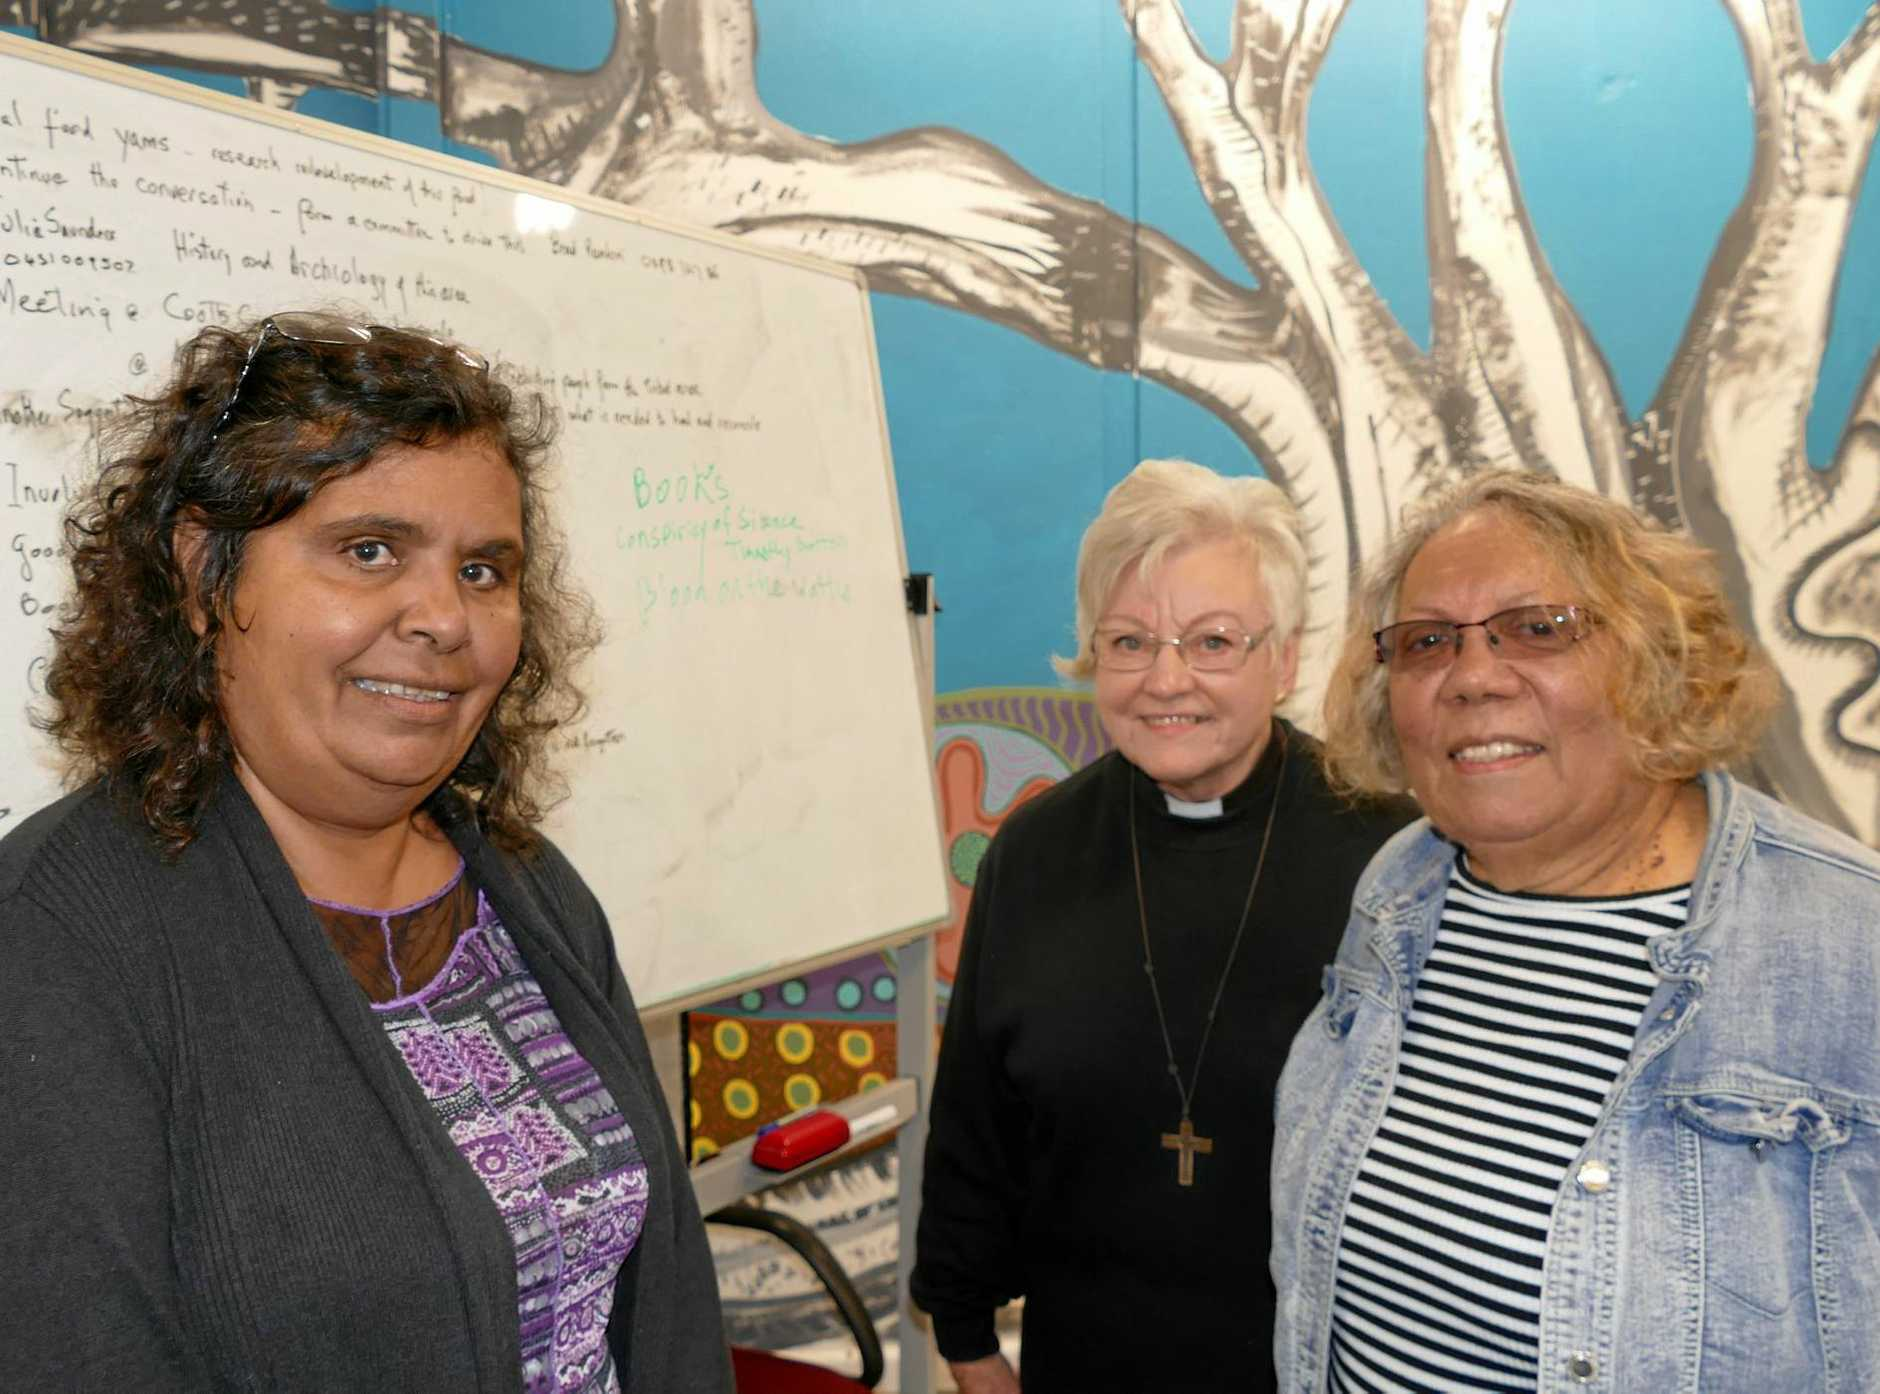 Meeting leader and Indigenous columnist Janelle Brown and Anglican ministers Rev Camellia Flanagan and Rev Lenore Parker were key speakers at the meeting.